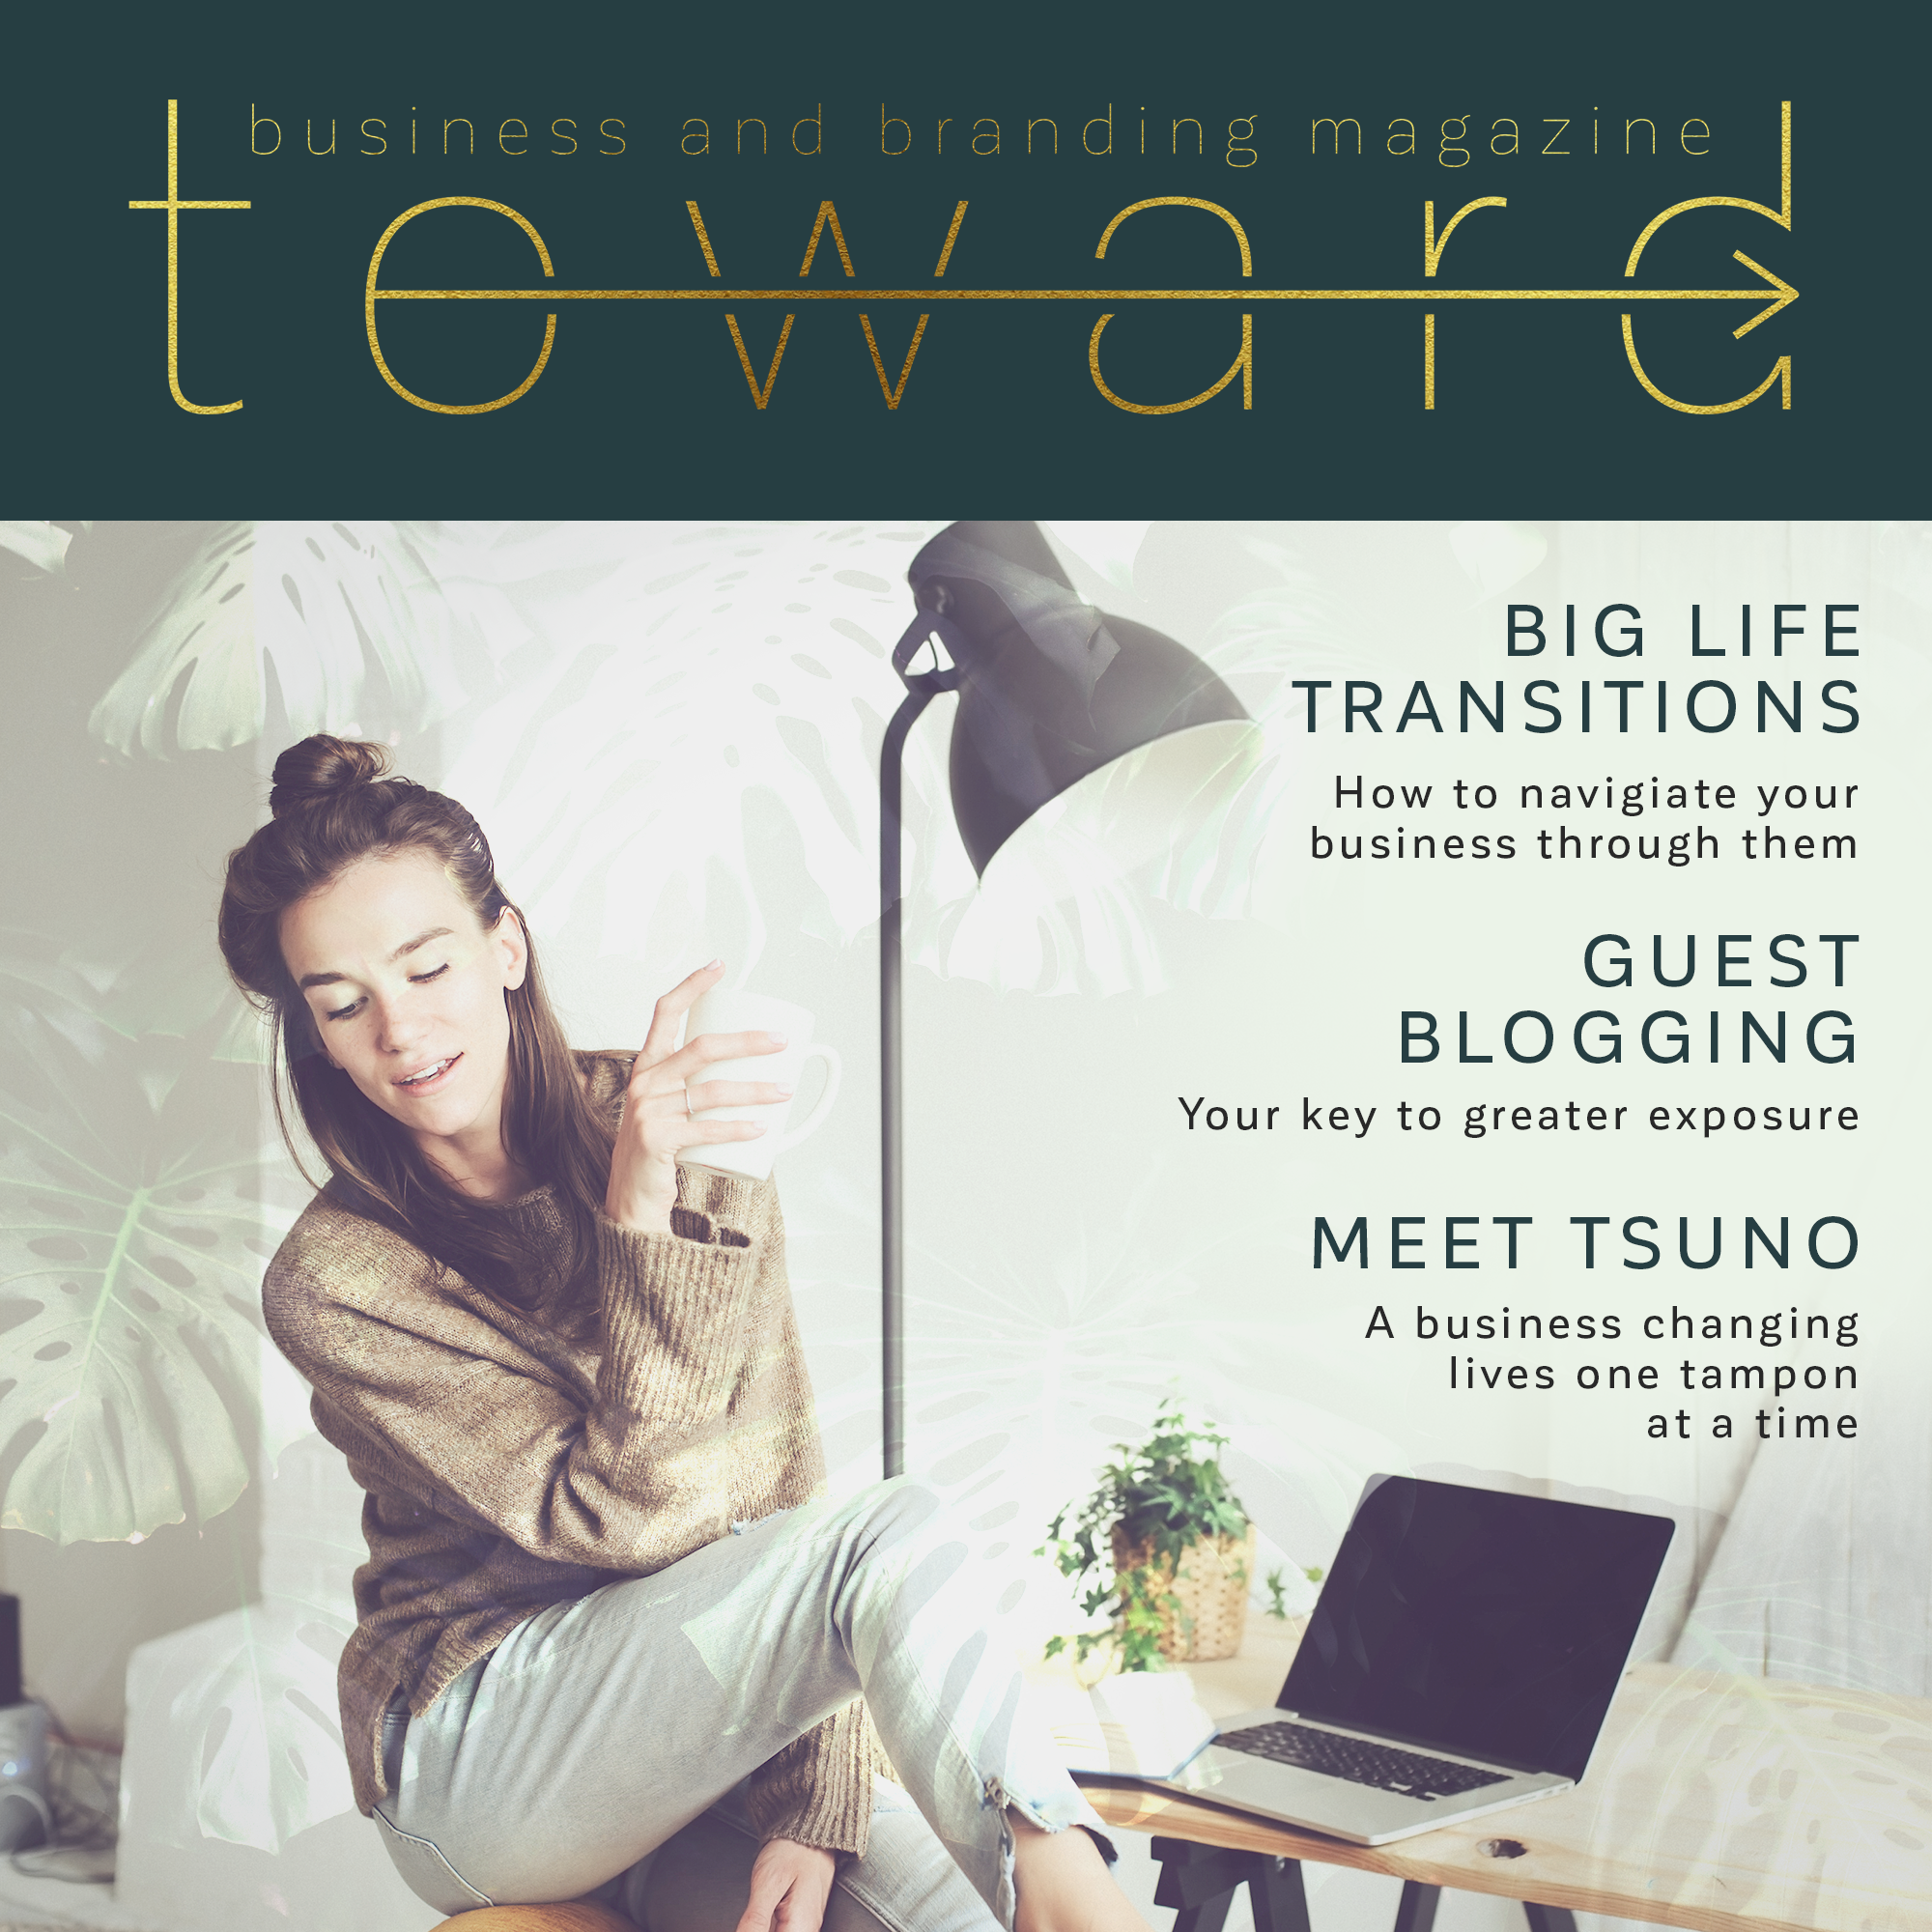 Toward-Cover5.png